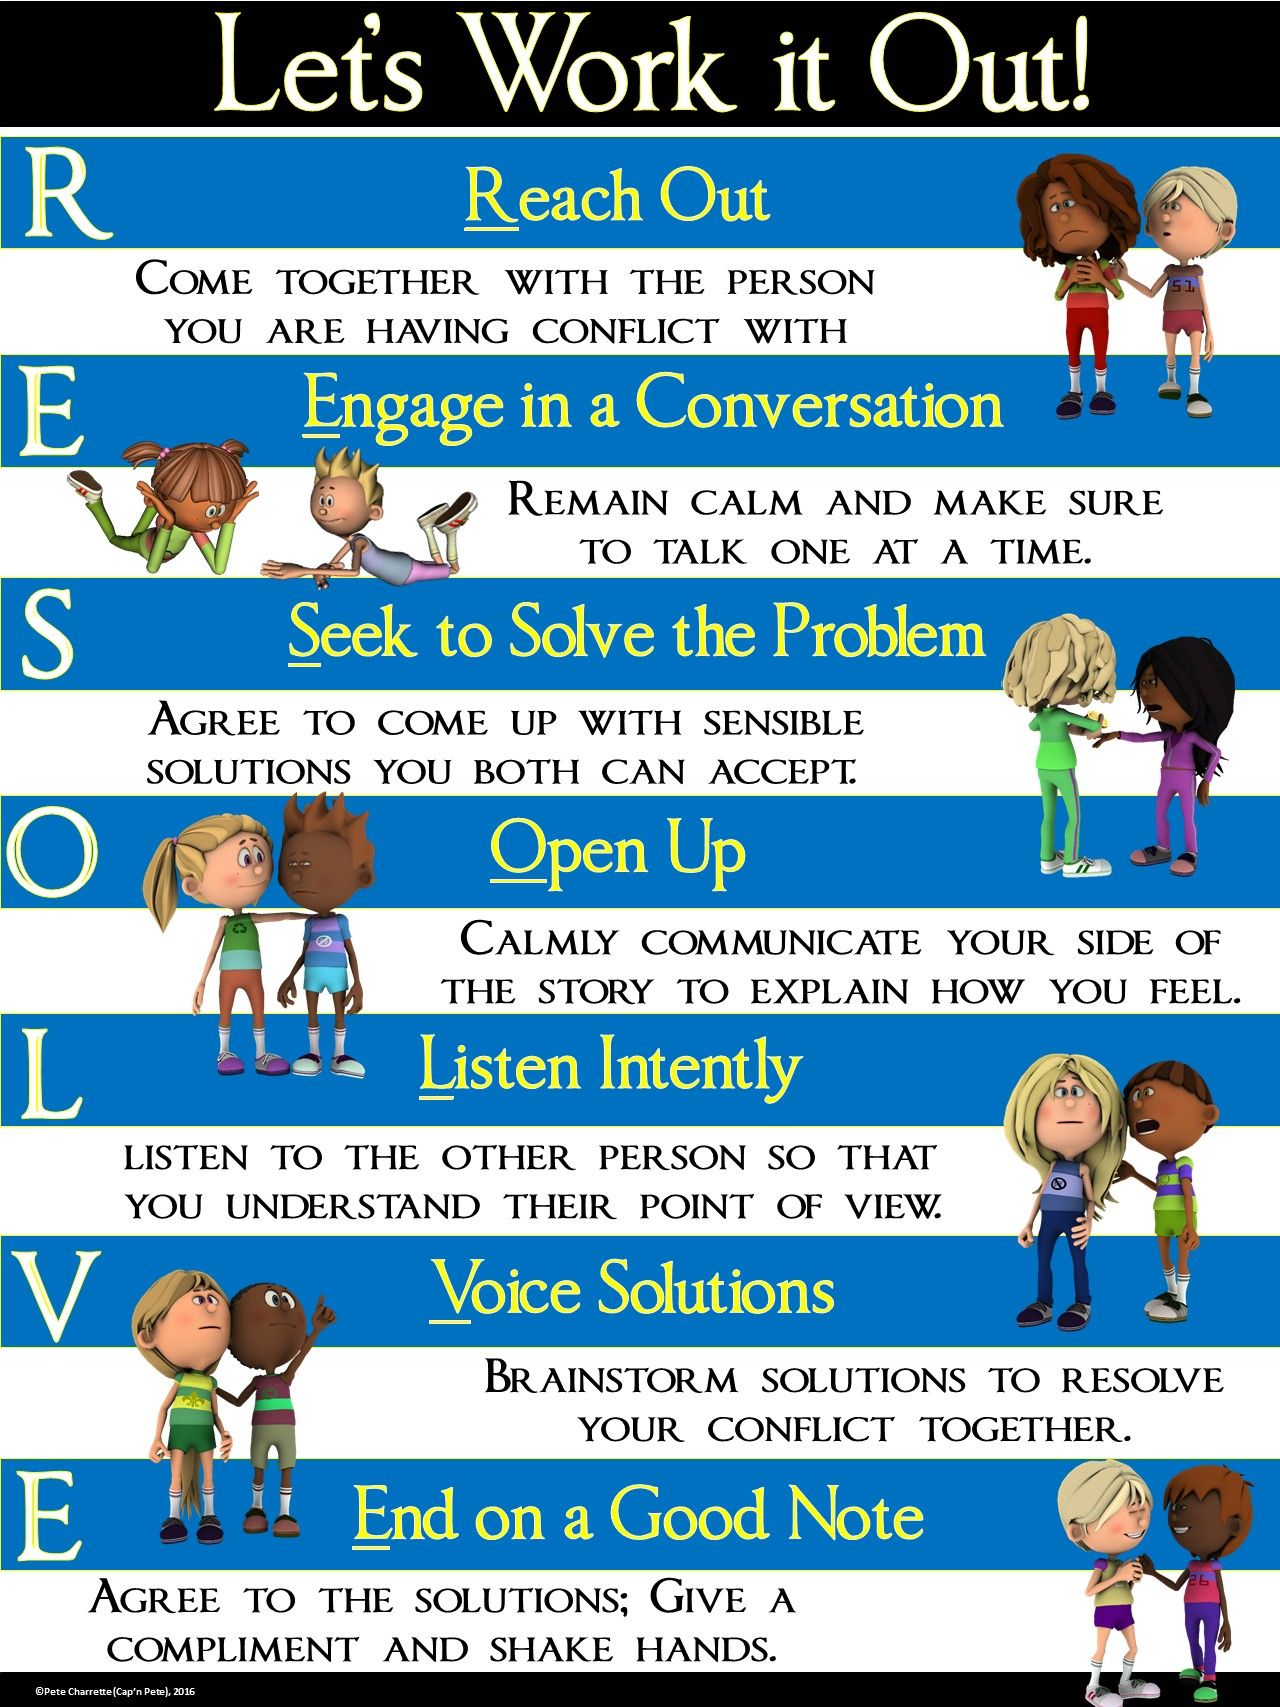 Conflict Resolution Poster Resolve Let S Work It Out